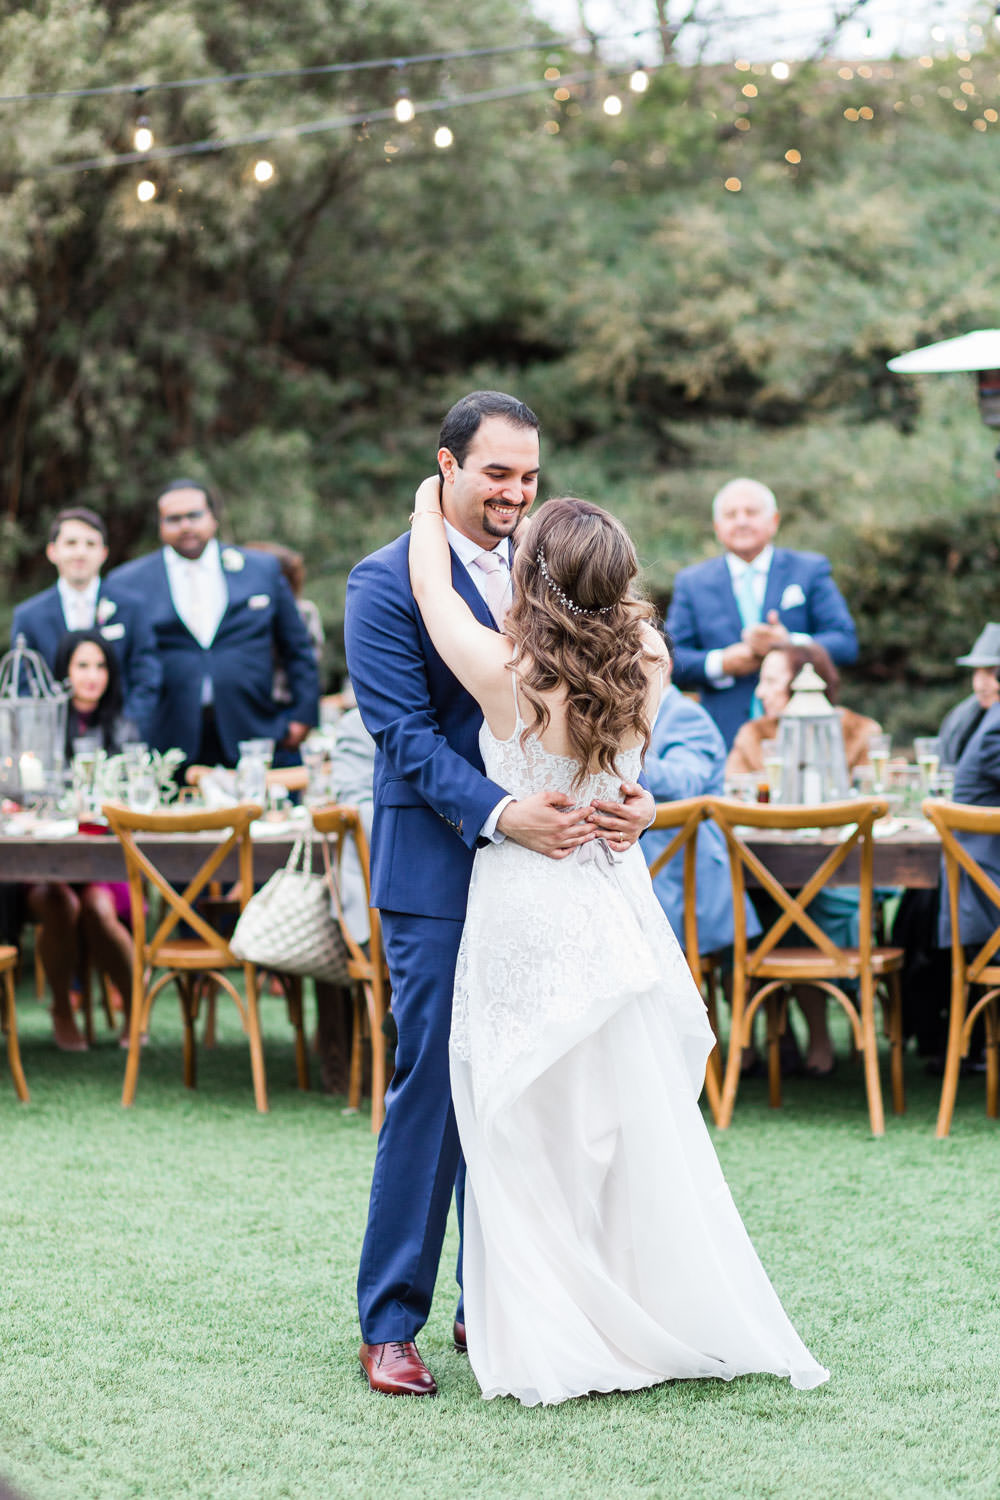 First dance, Ethereal Open Air Resort Wedding Reception, Cavin Elizabeth Photography